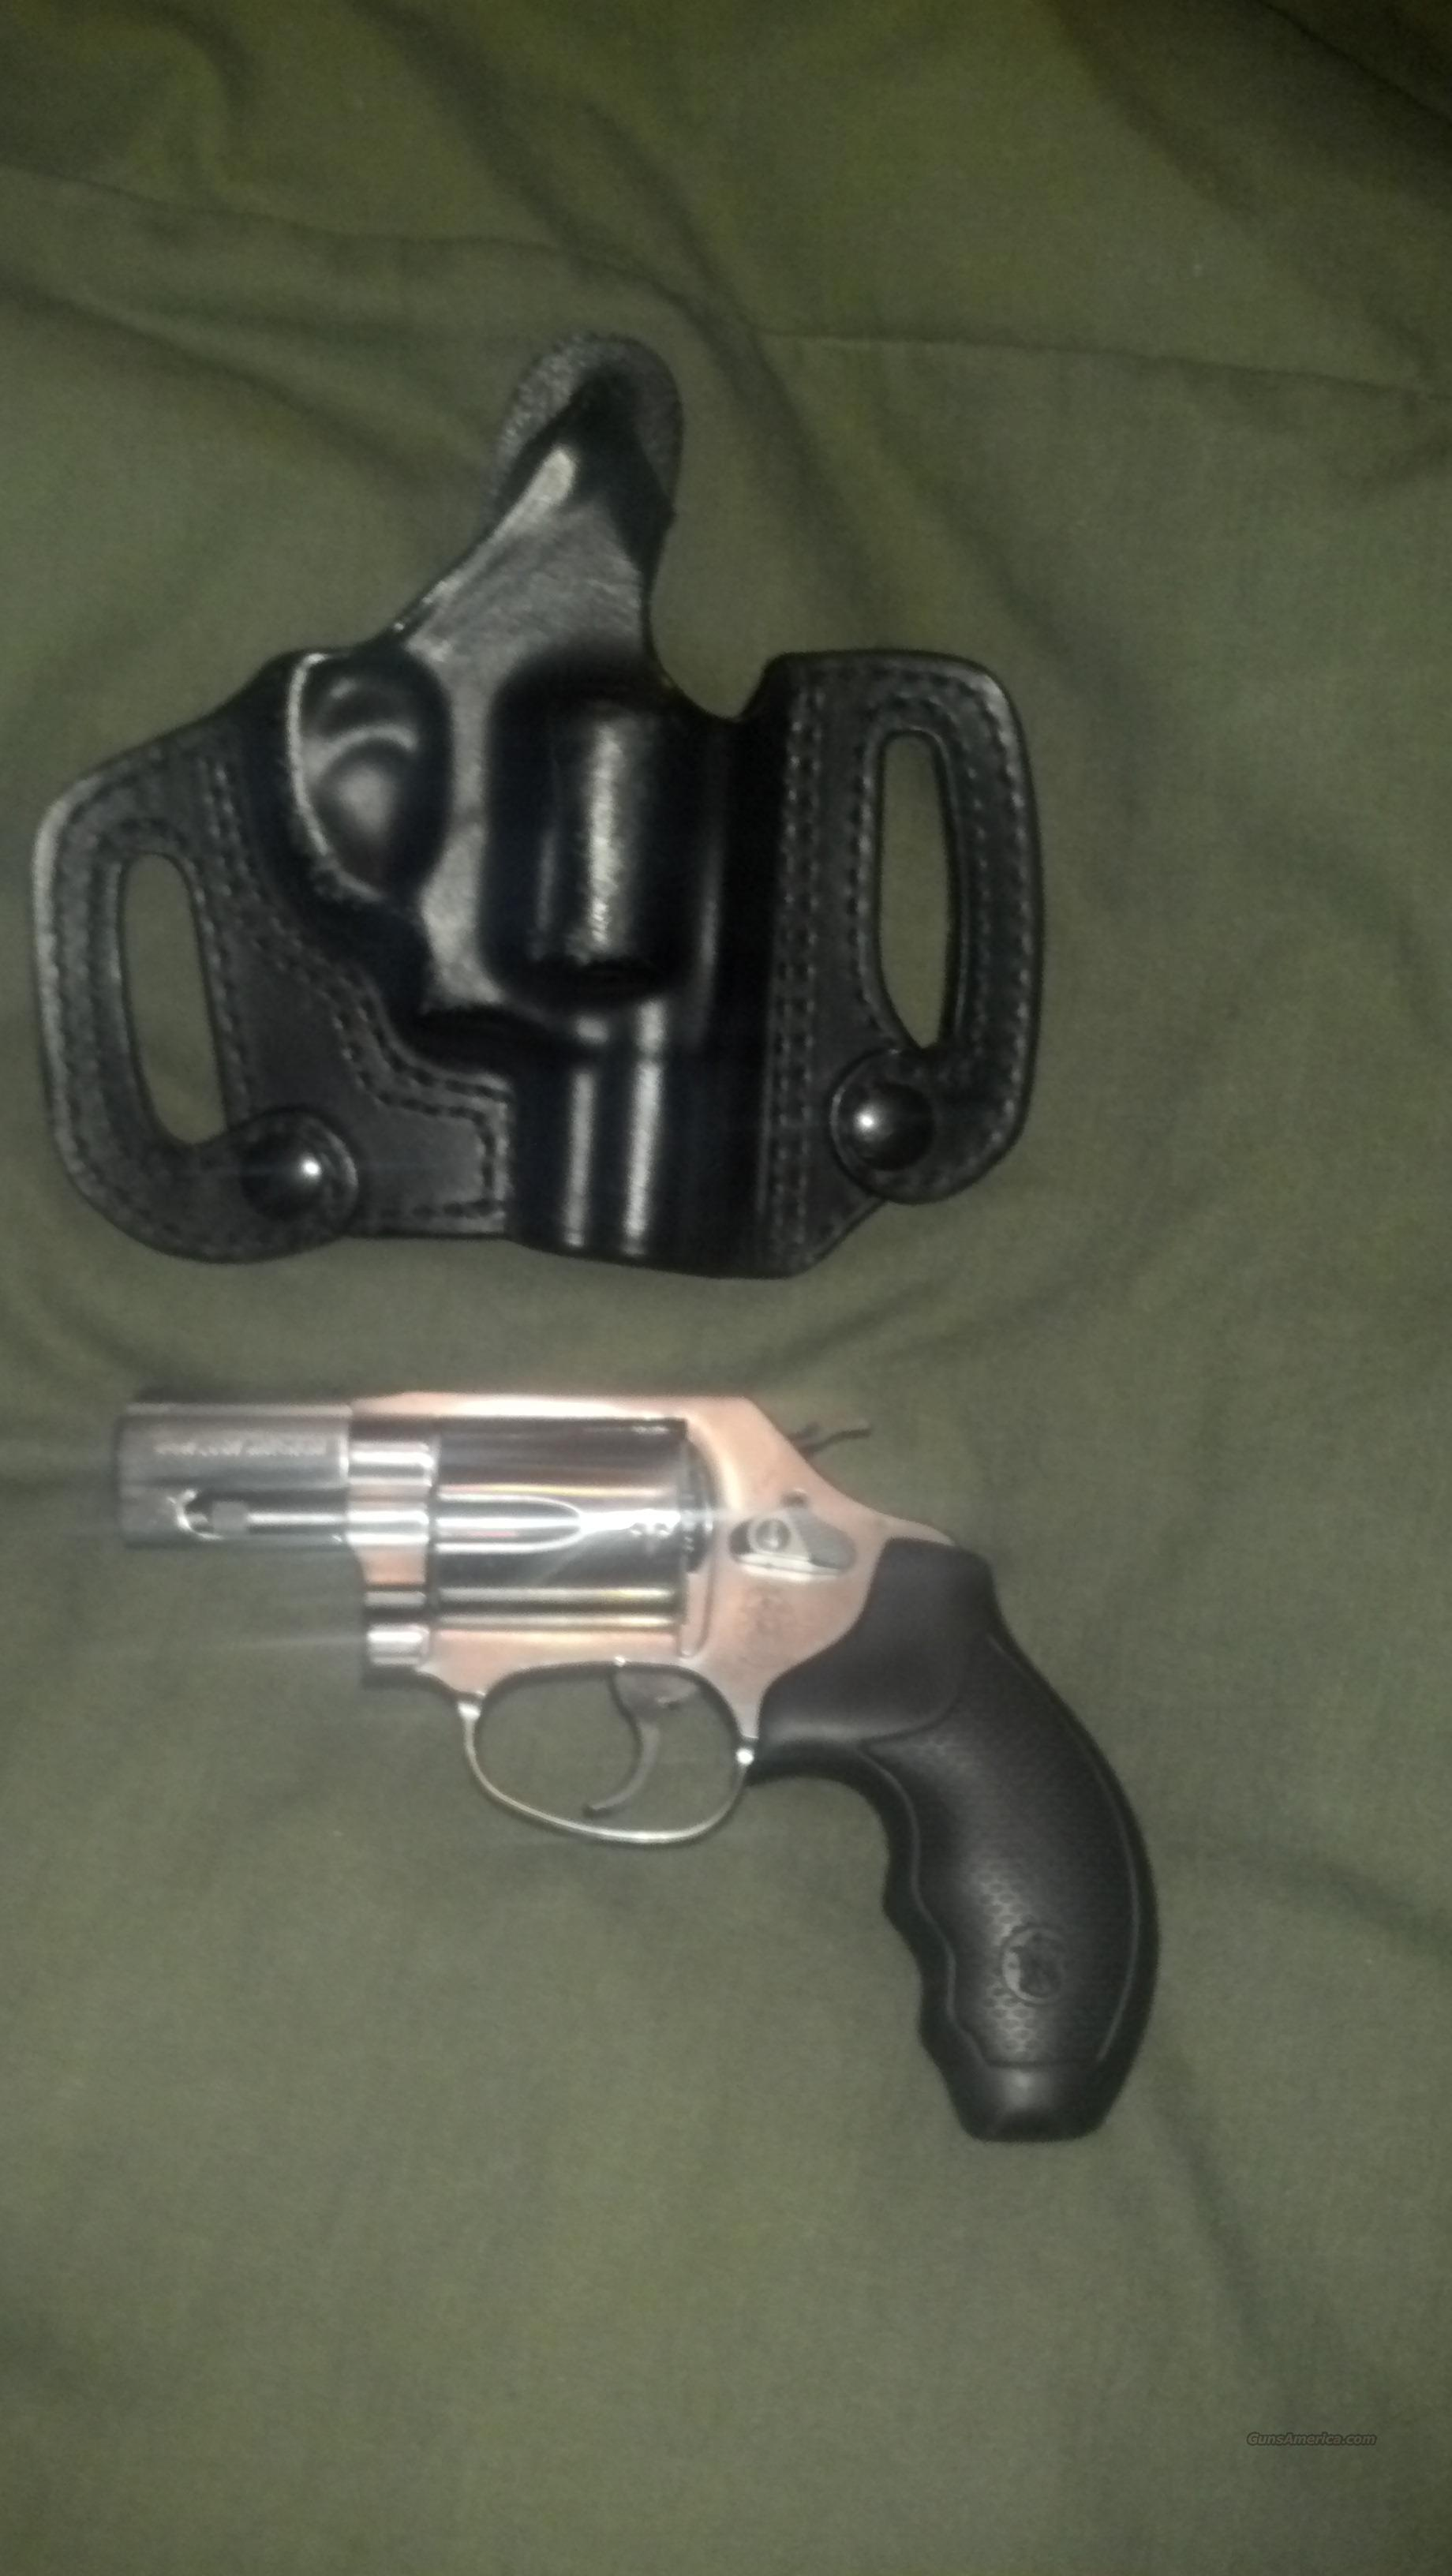 Smith and Wesson Model 60 .357 plus holster  Guns > Pistols > Smith & Wesson Revolvers > Pocket Pistols